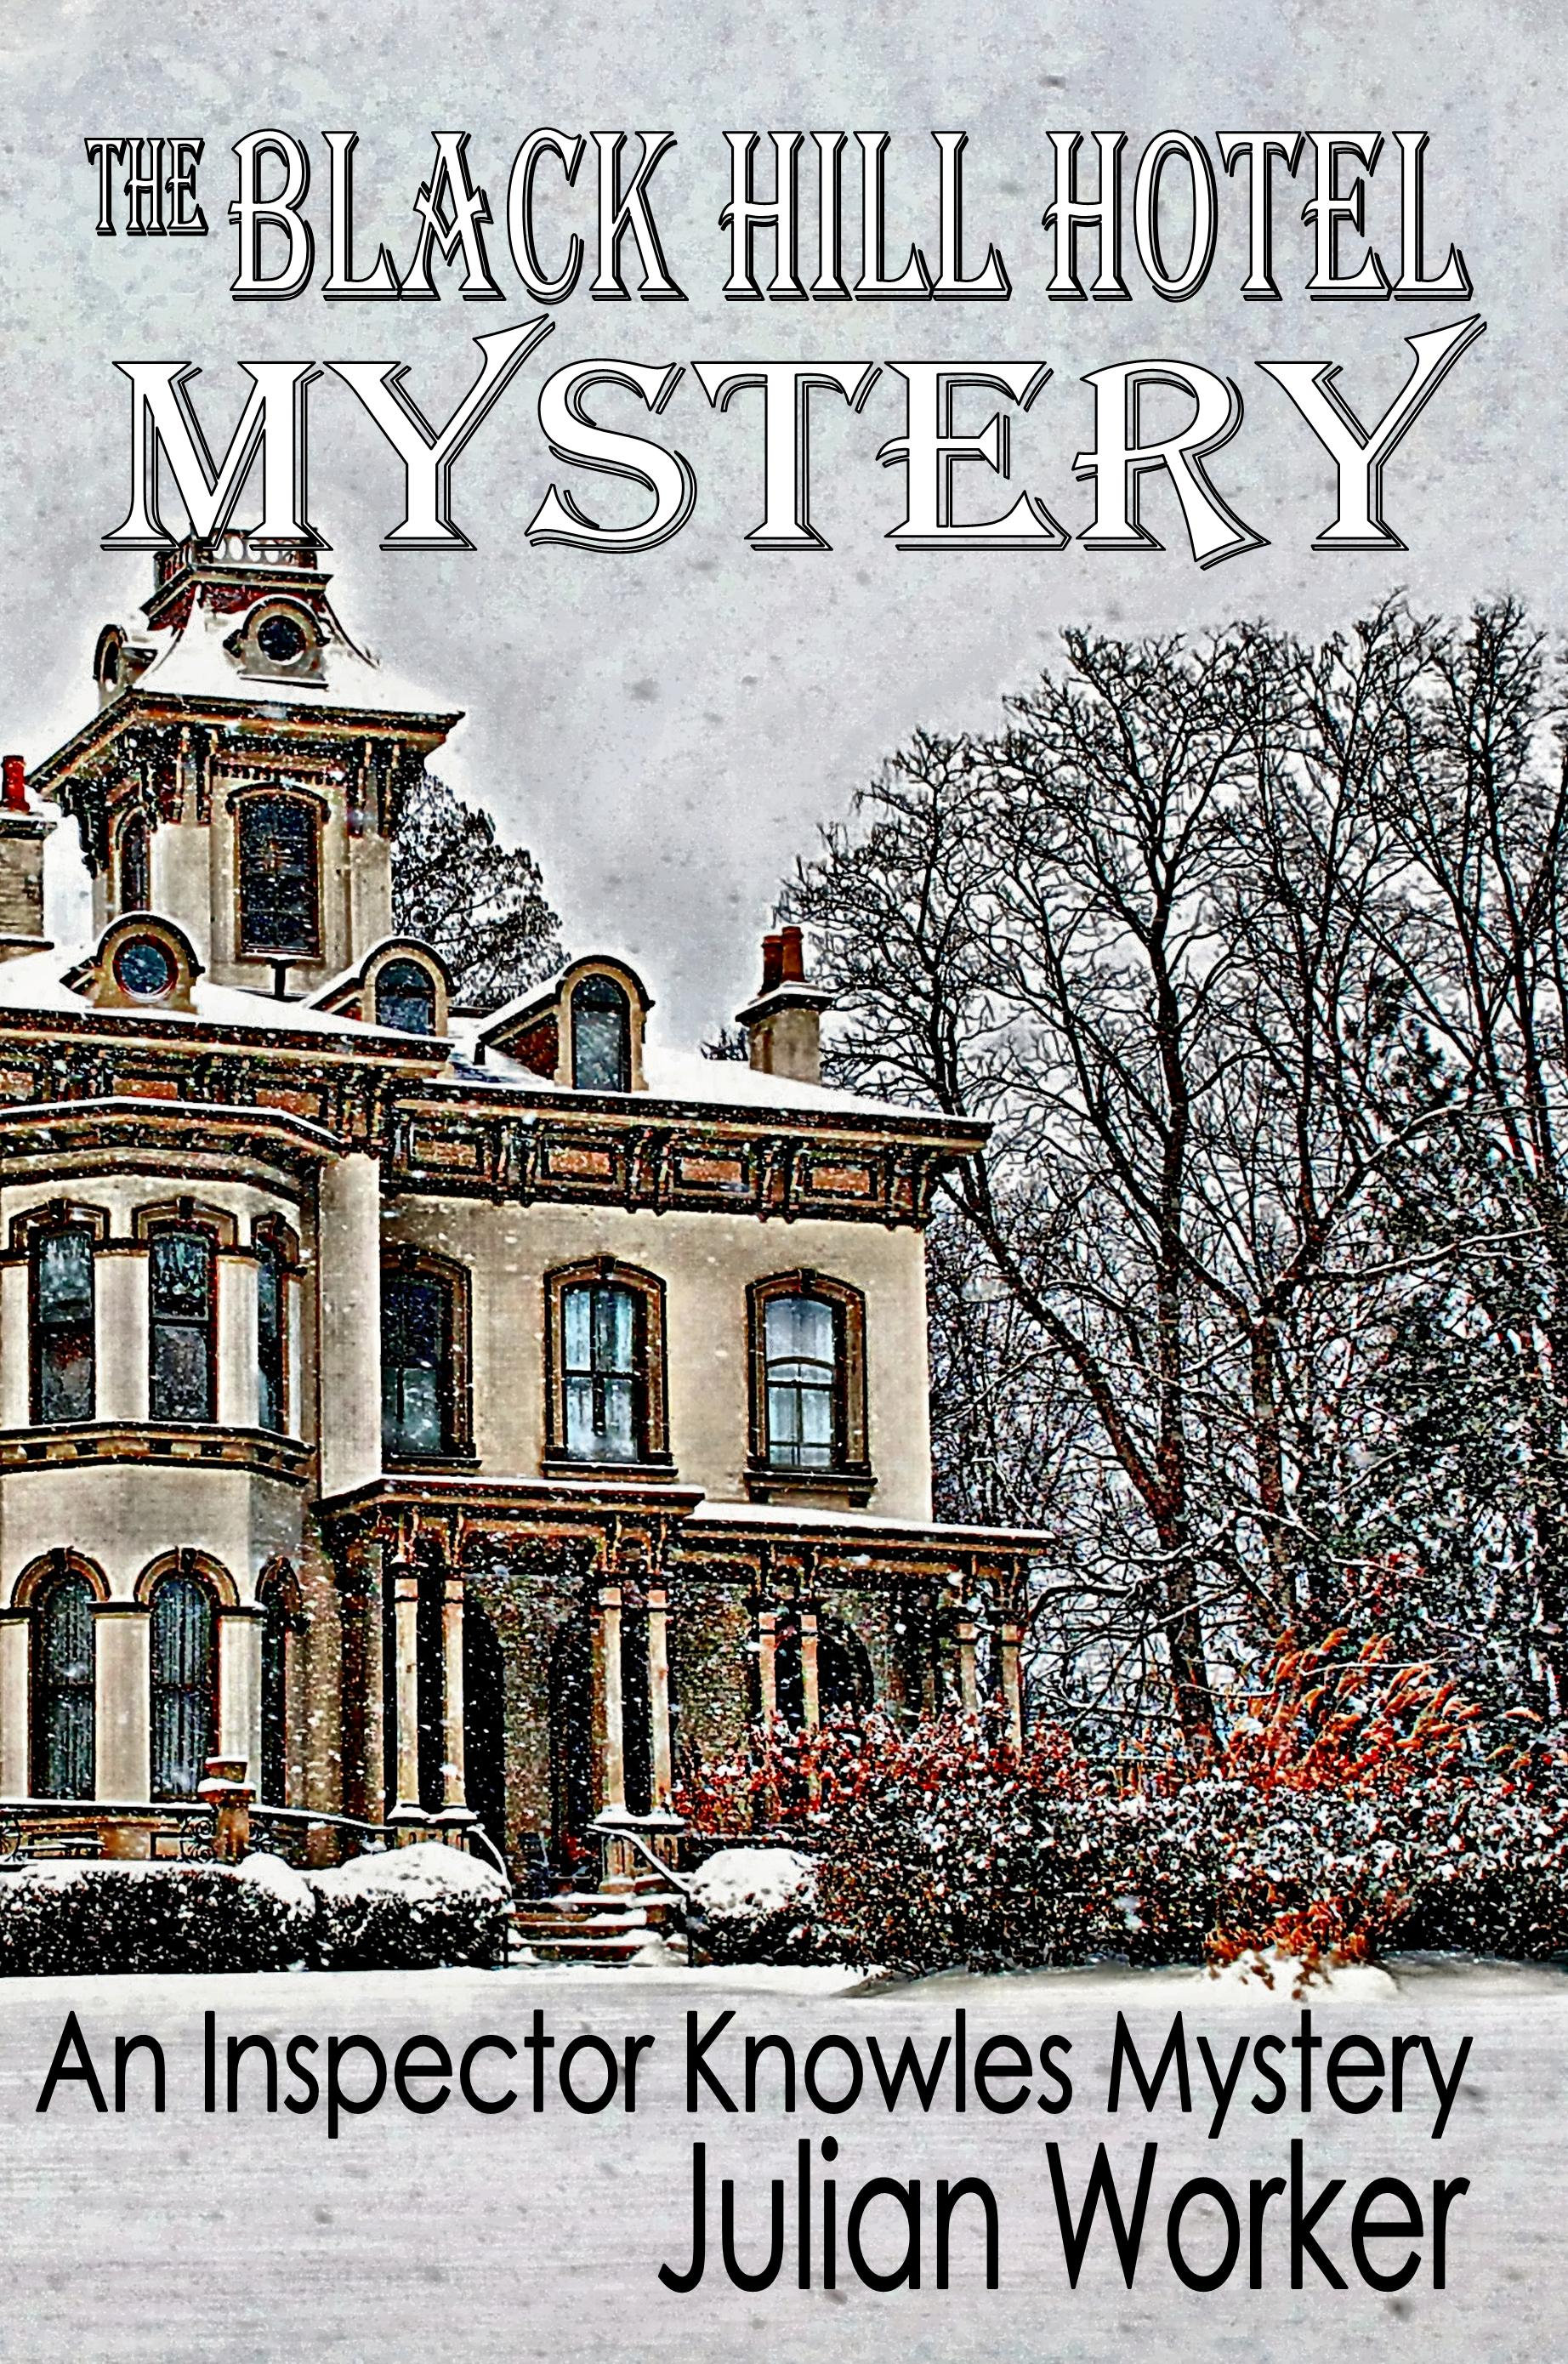 The Black Hill Hotel Mystery – 65